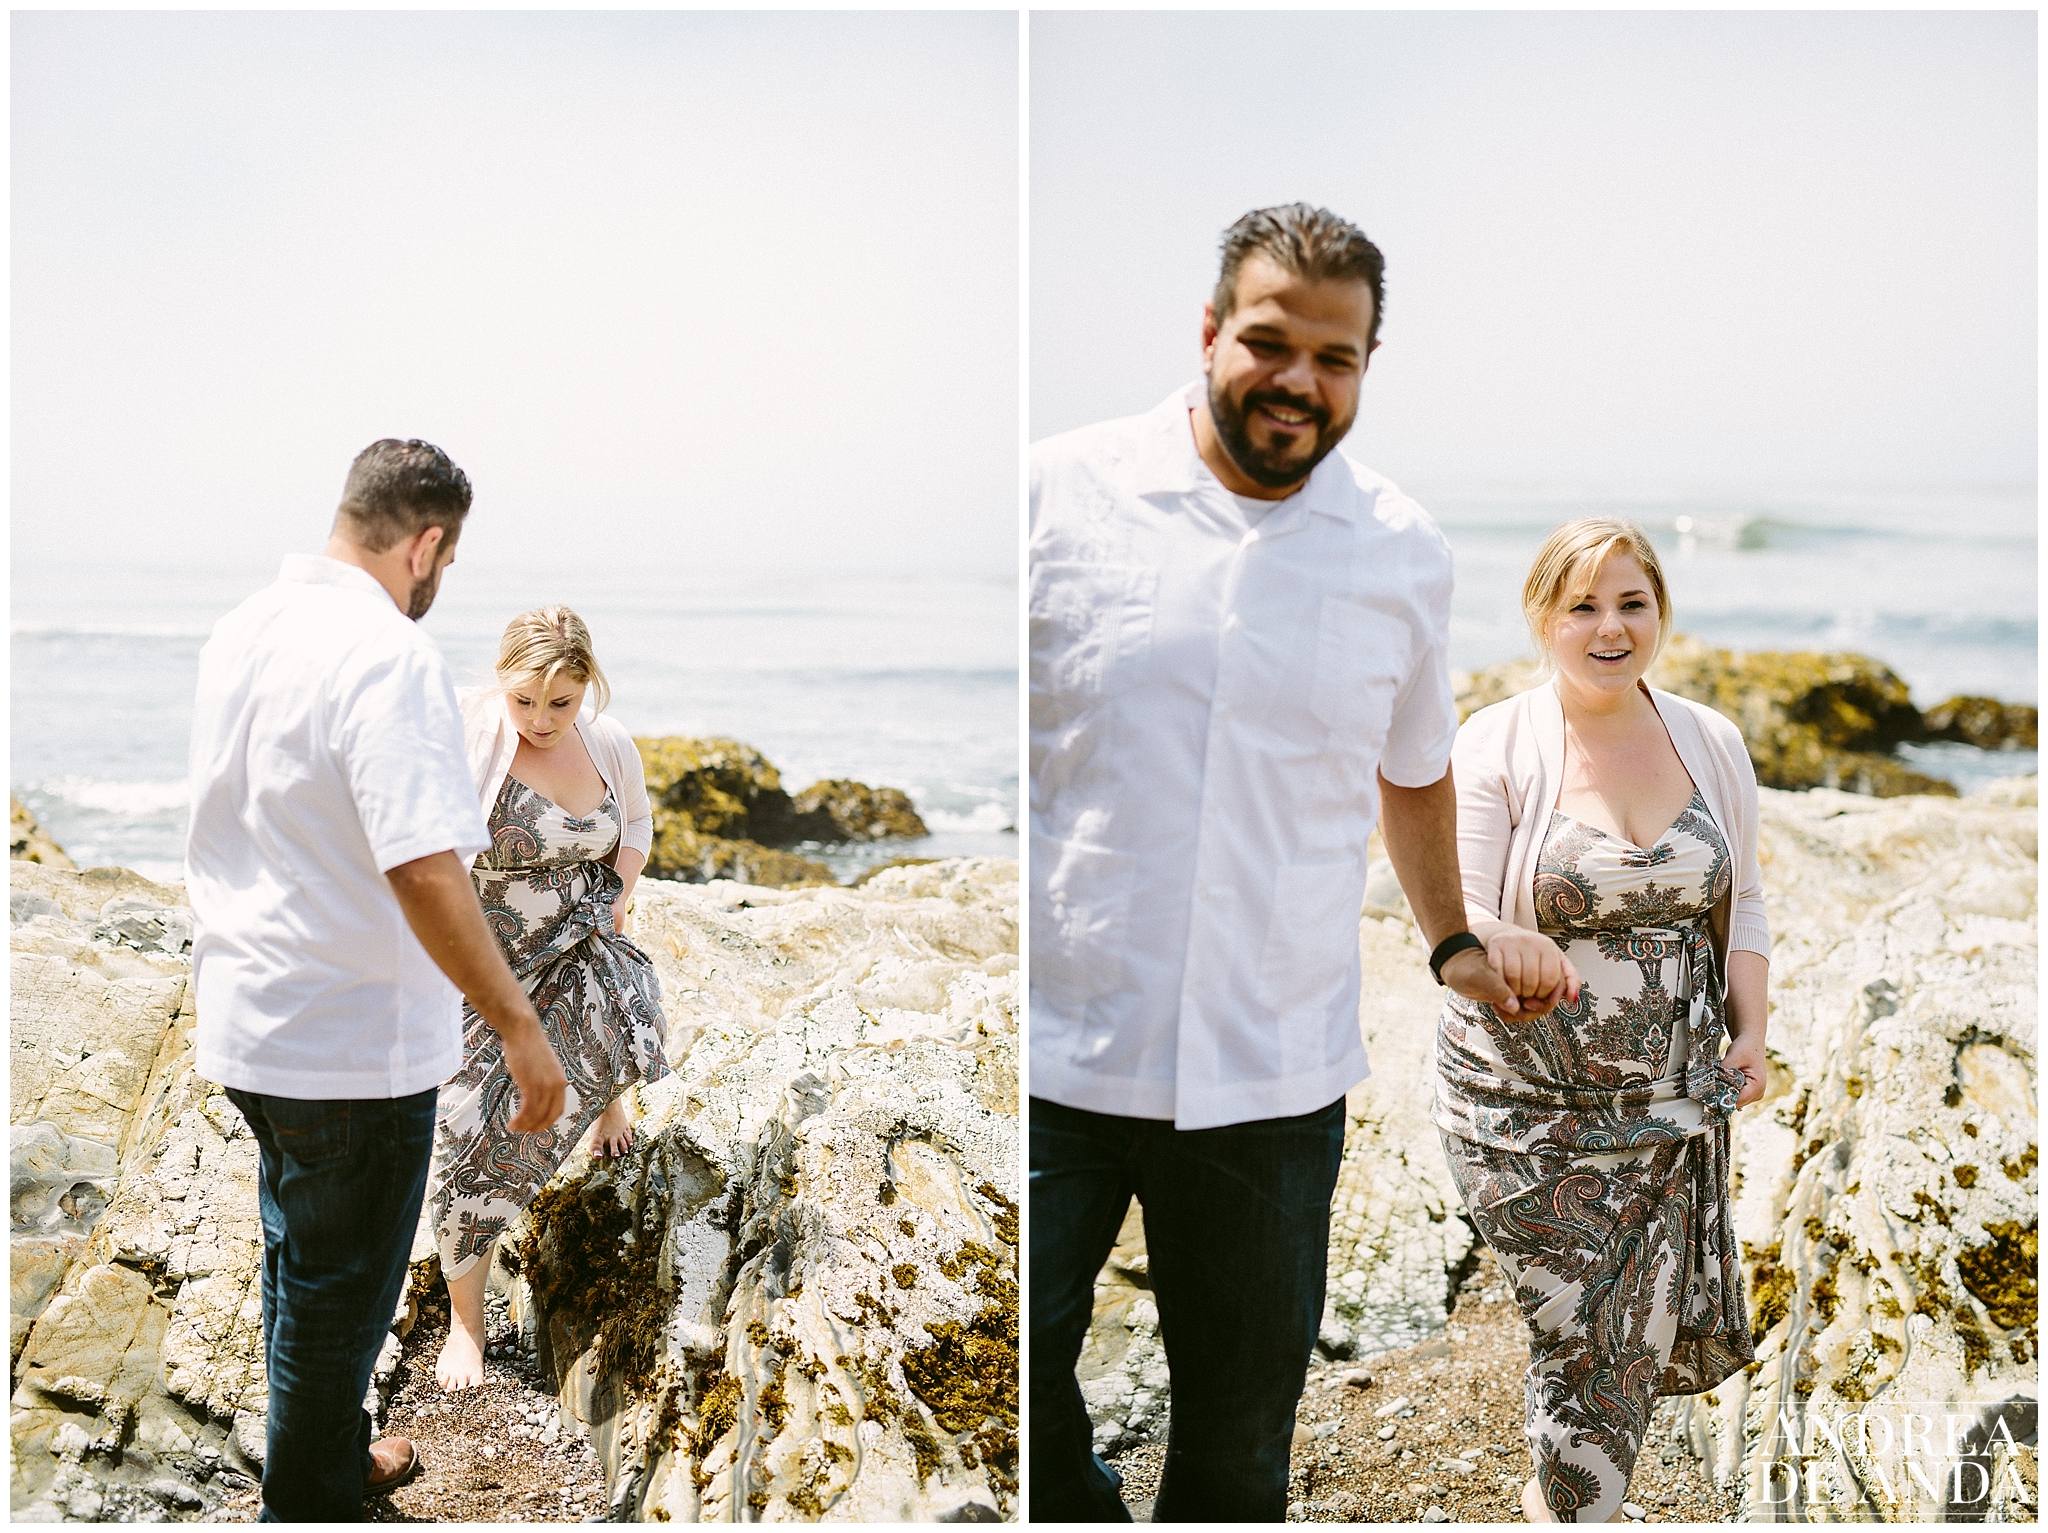 Pismo Beach engagement photography_Andrea de Anda Photography__0015.jpg